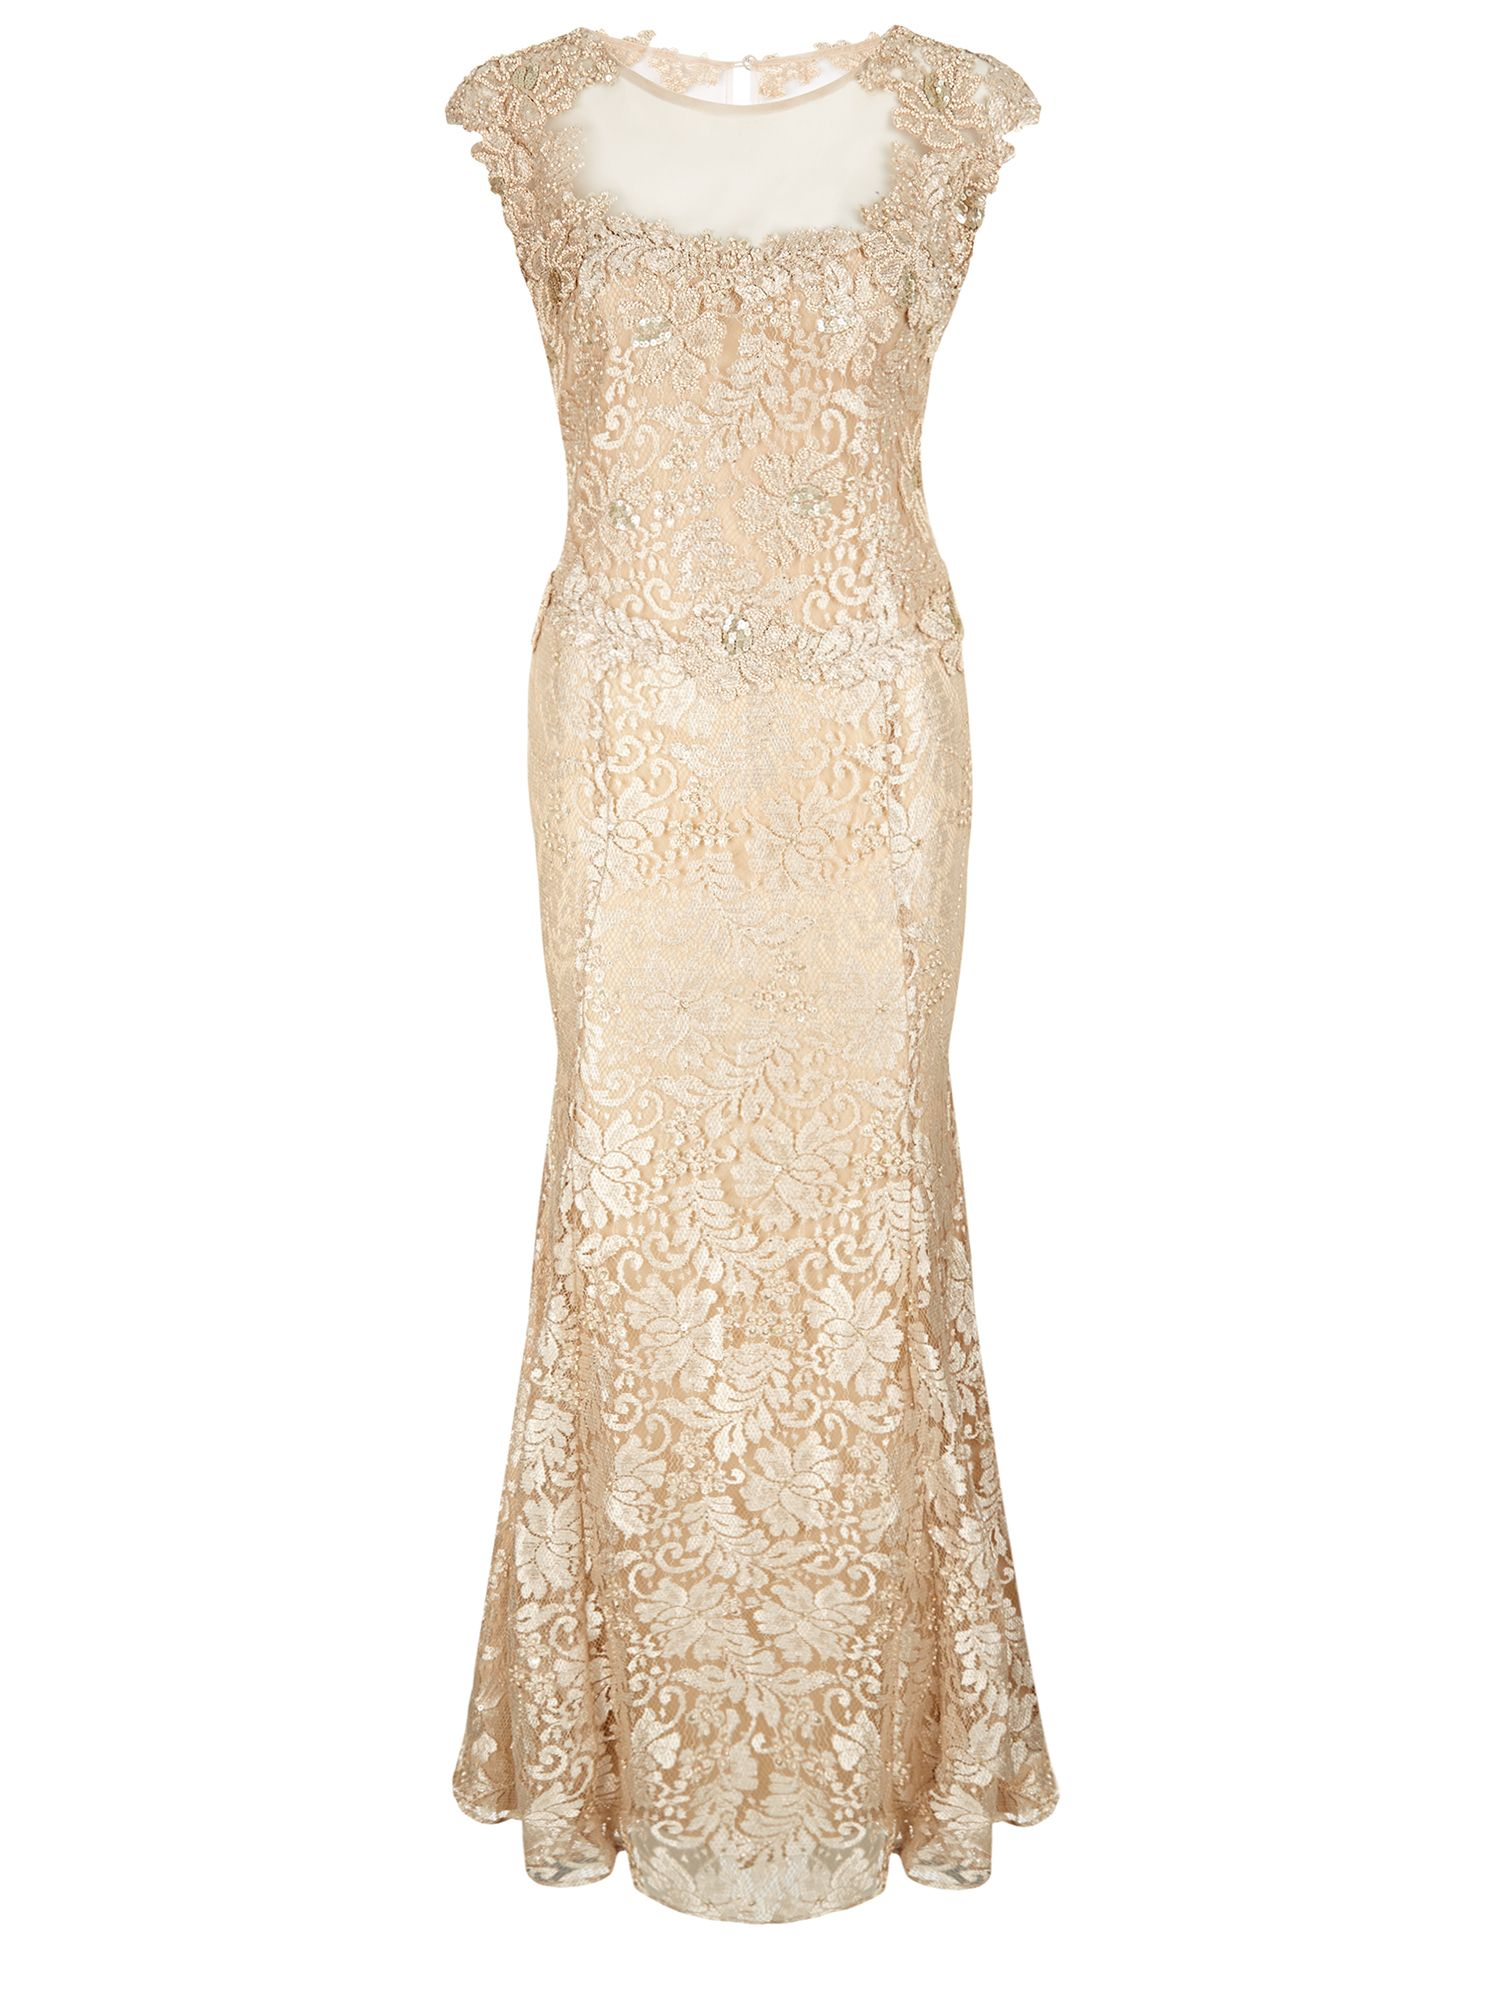 Jacques Vert Lace Beaded Evening Dress $239.00 AT vintagedancer.com